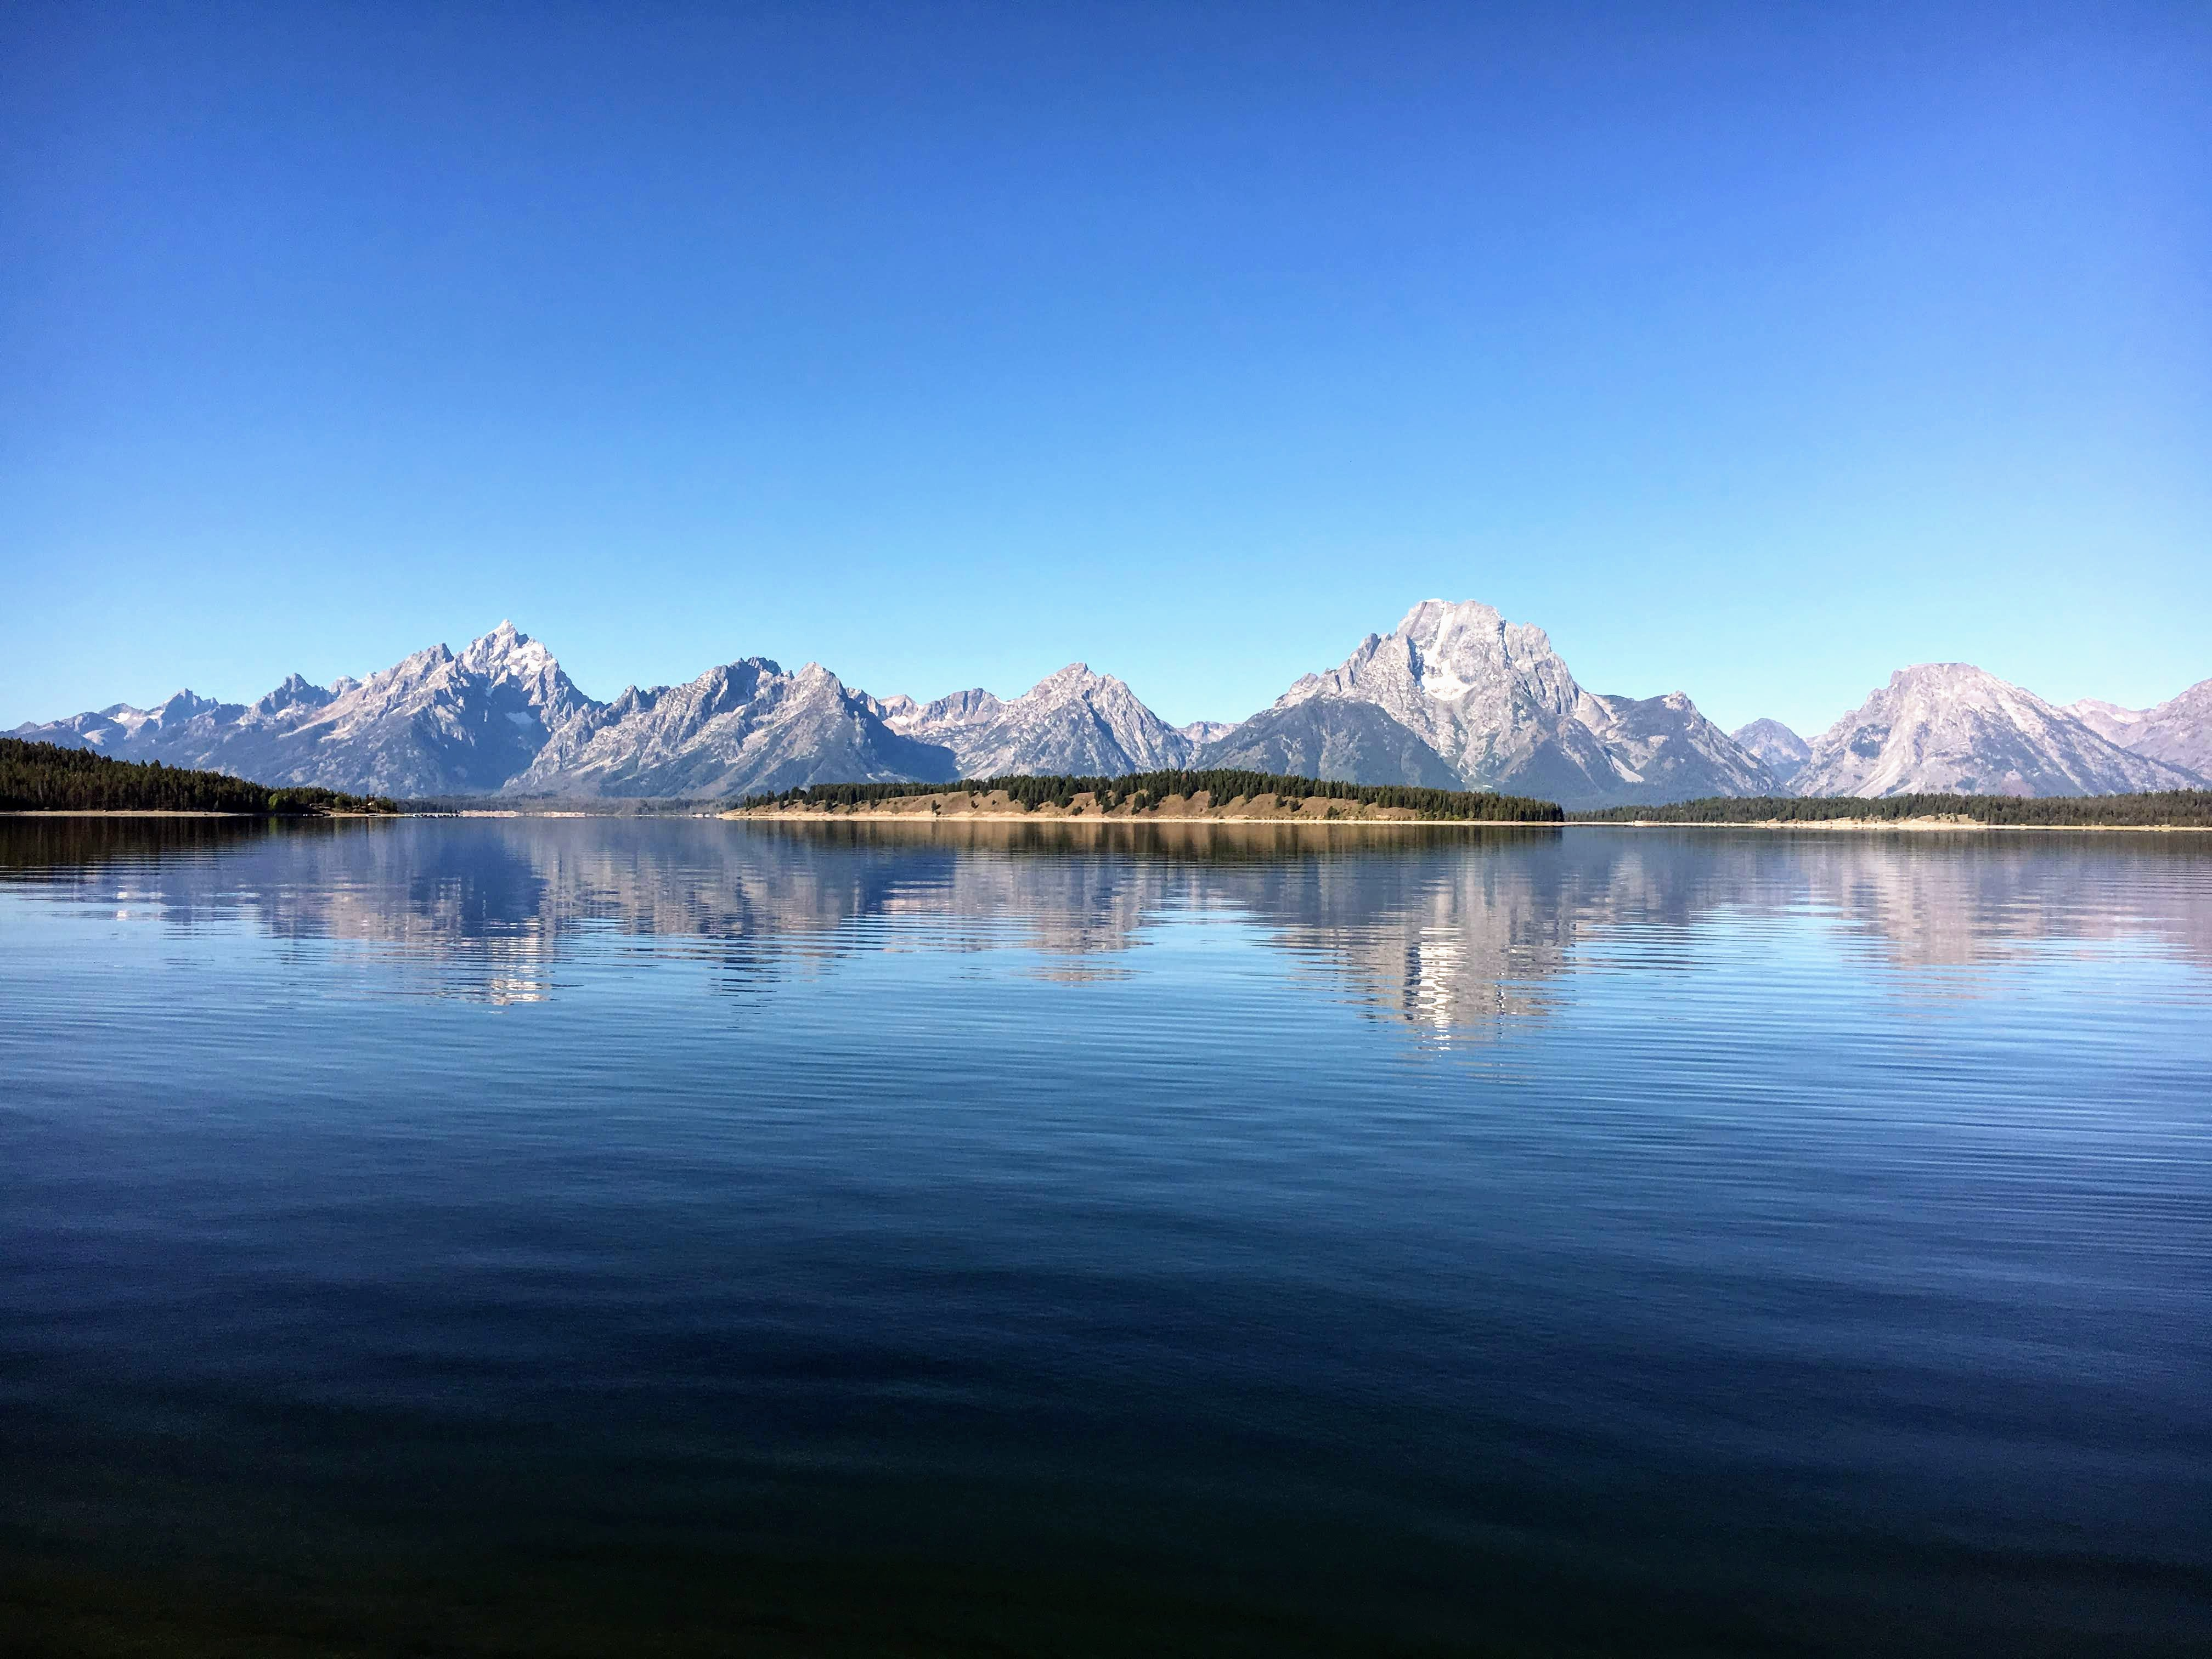 Grand Teton National Park — sadly I only drove through the park and didn't get to do much exploration but it was a stunning place and somewhere I want to go back to and properly explore.